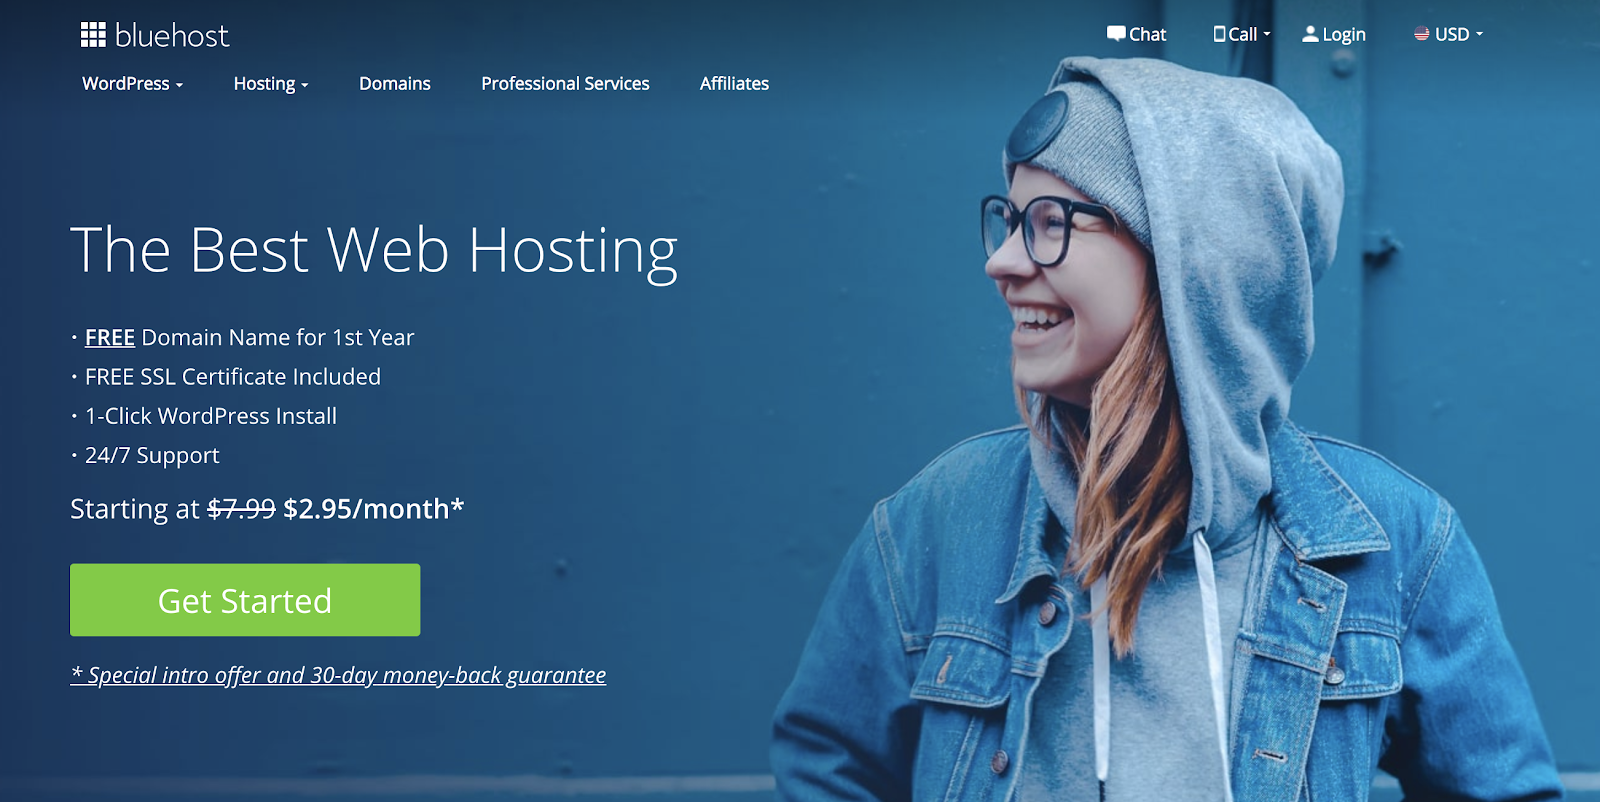 Bluehost Hosting is a Good Choice For New Bloggers (Screenshot)